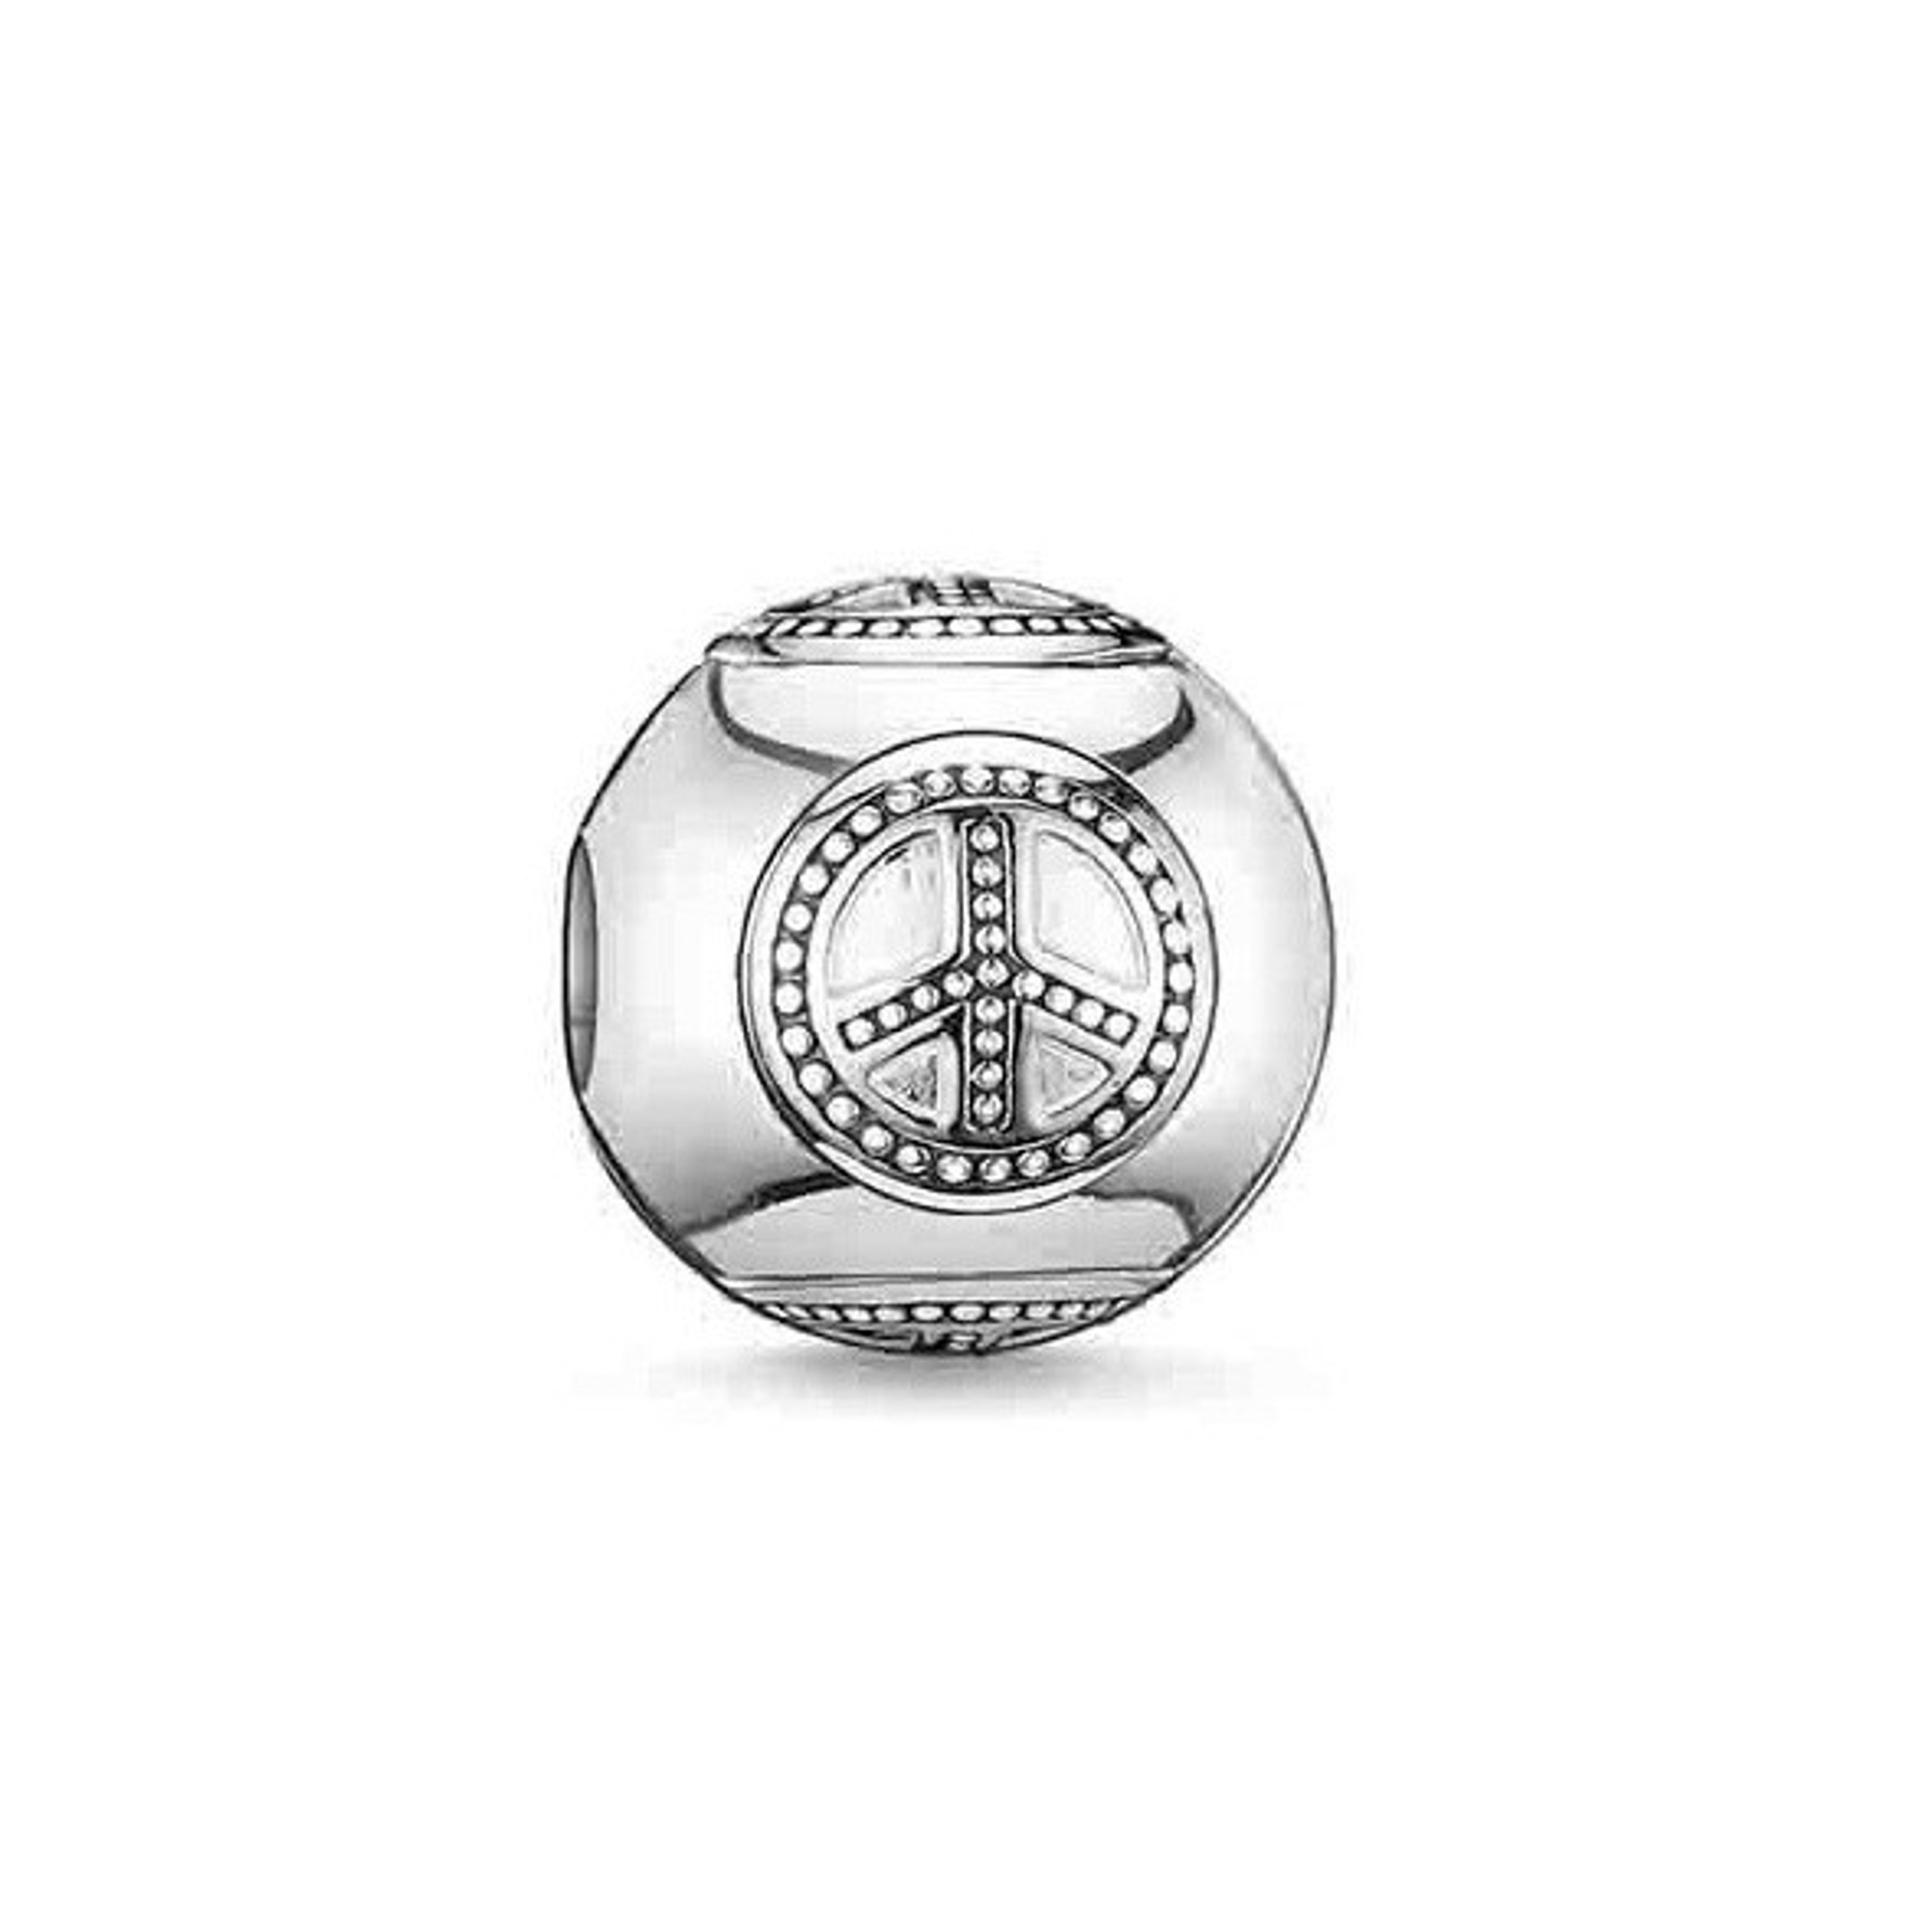 THOMAS SABO Bead Frieden K0032-001-12